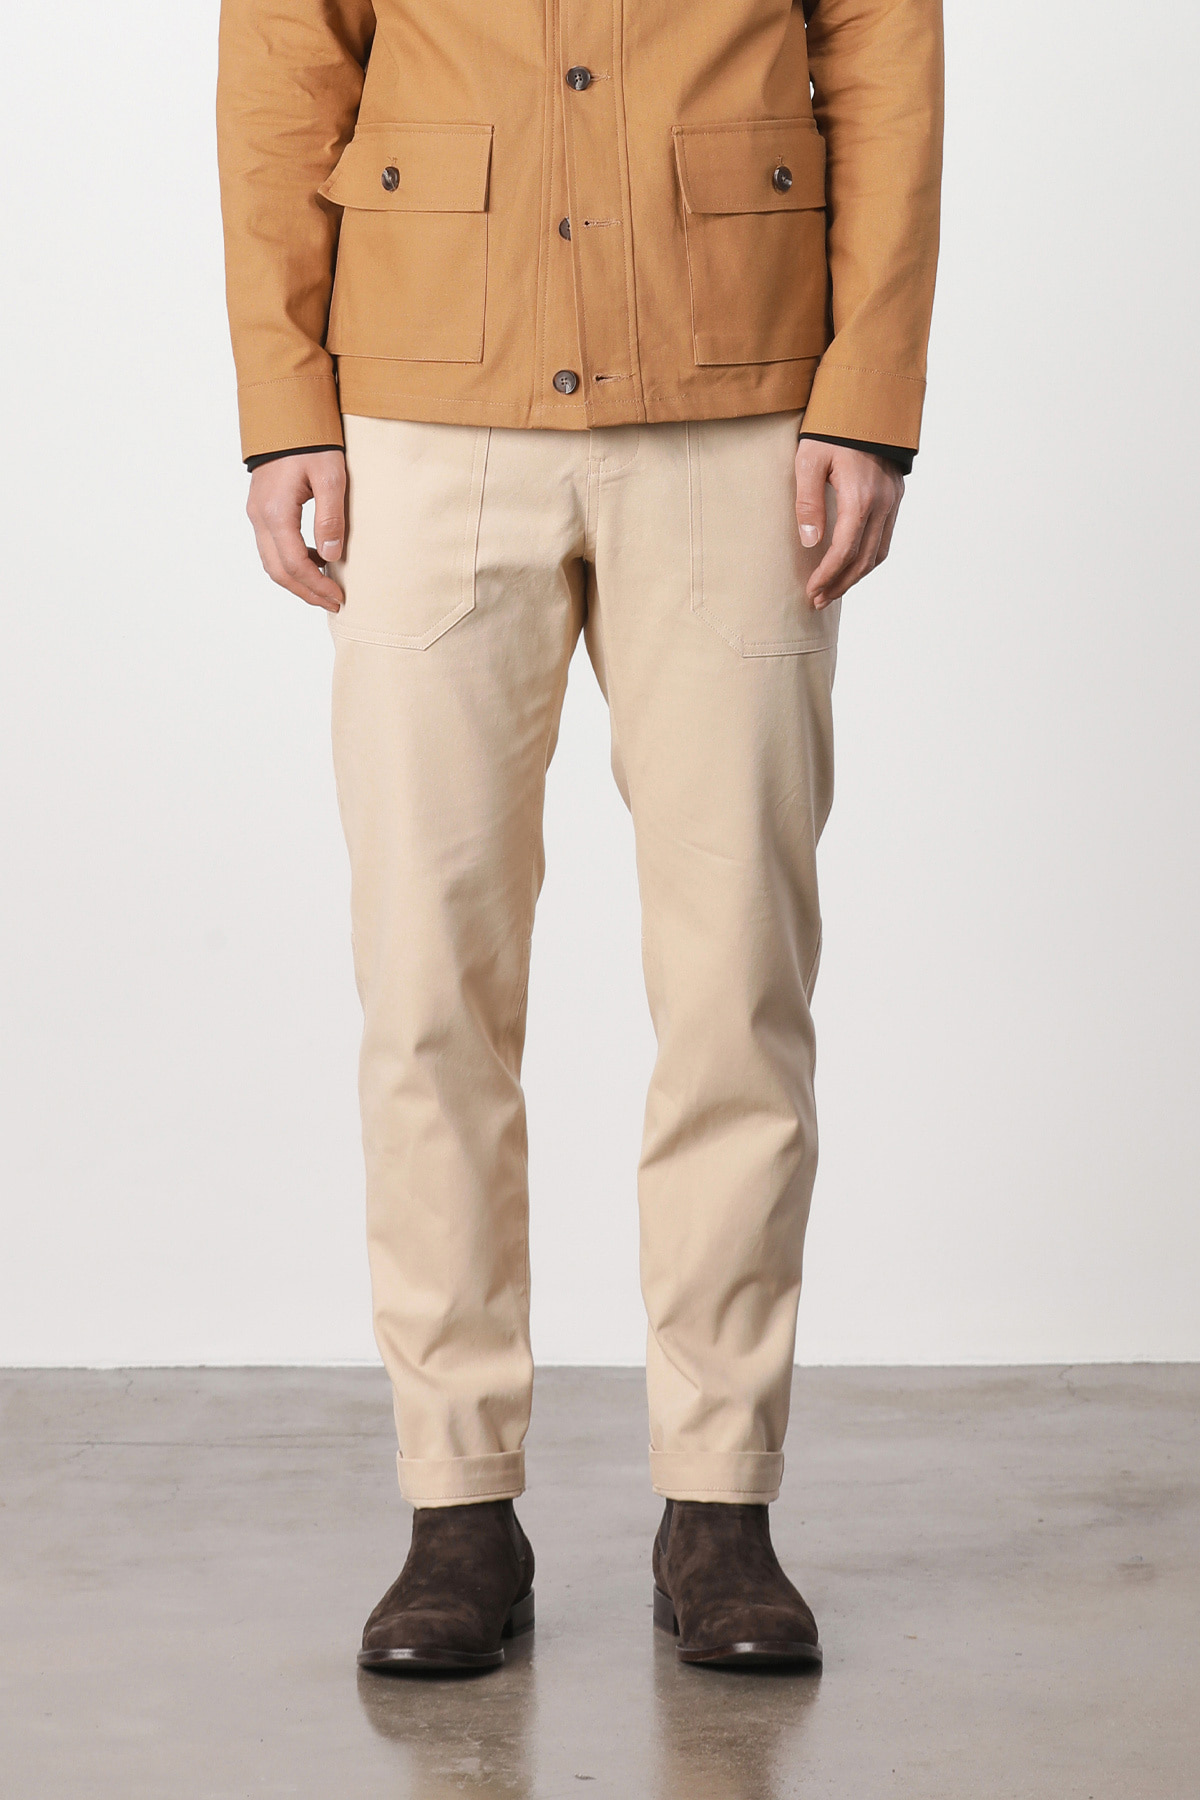 페이탈리즘 Fatigue relax cotton pants (beige) #jp09